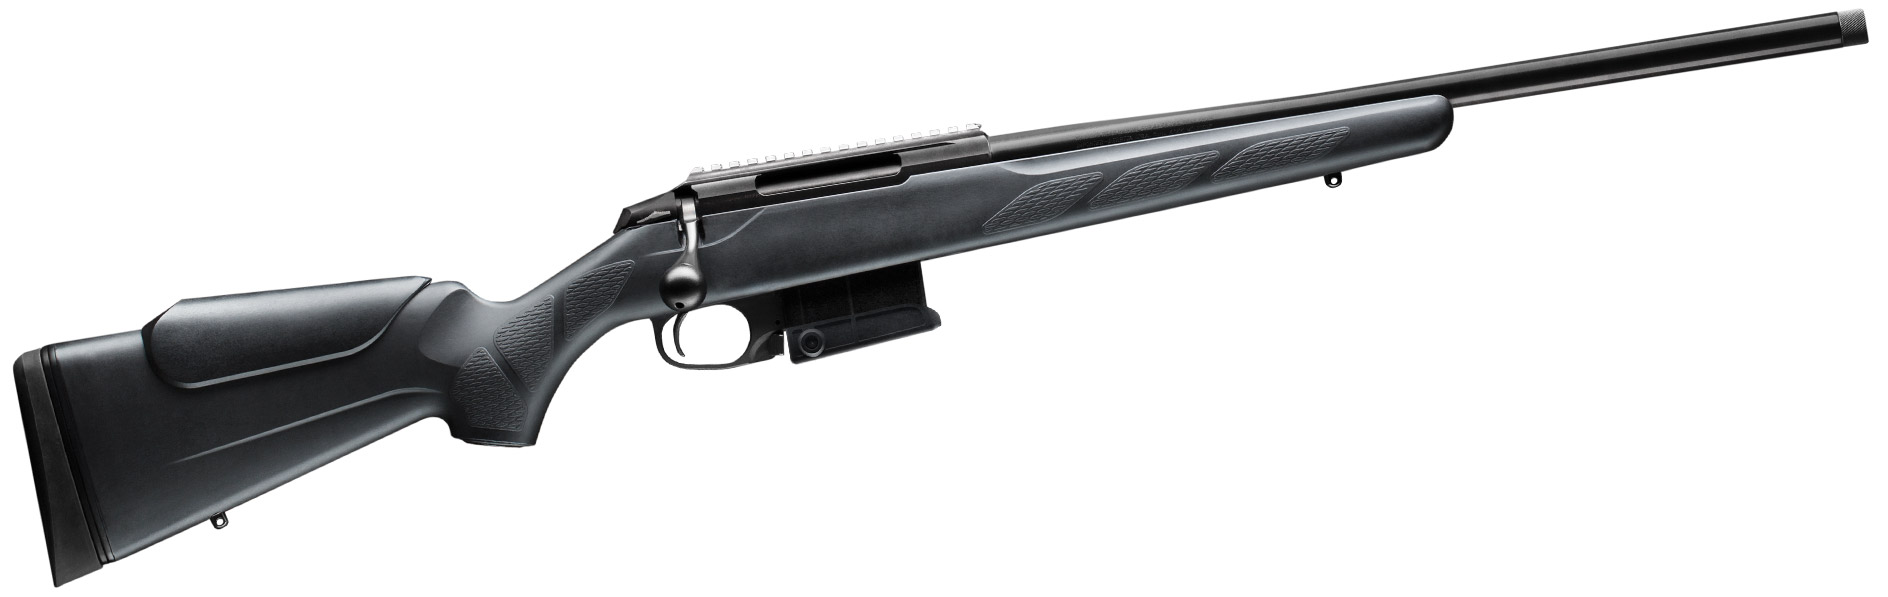 tikka-rifle--feat-details